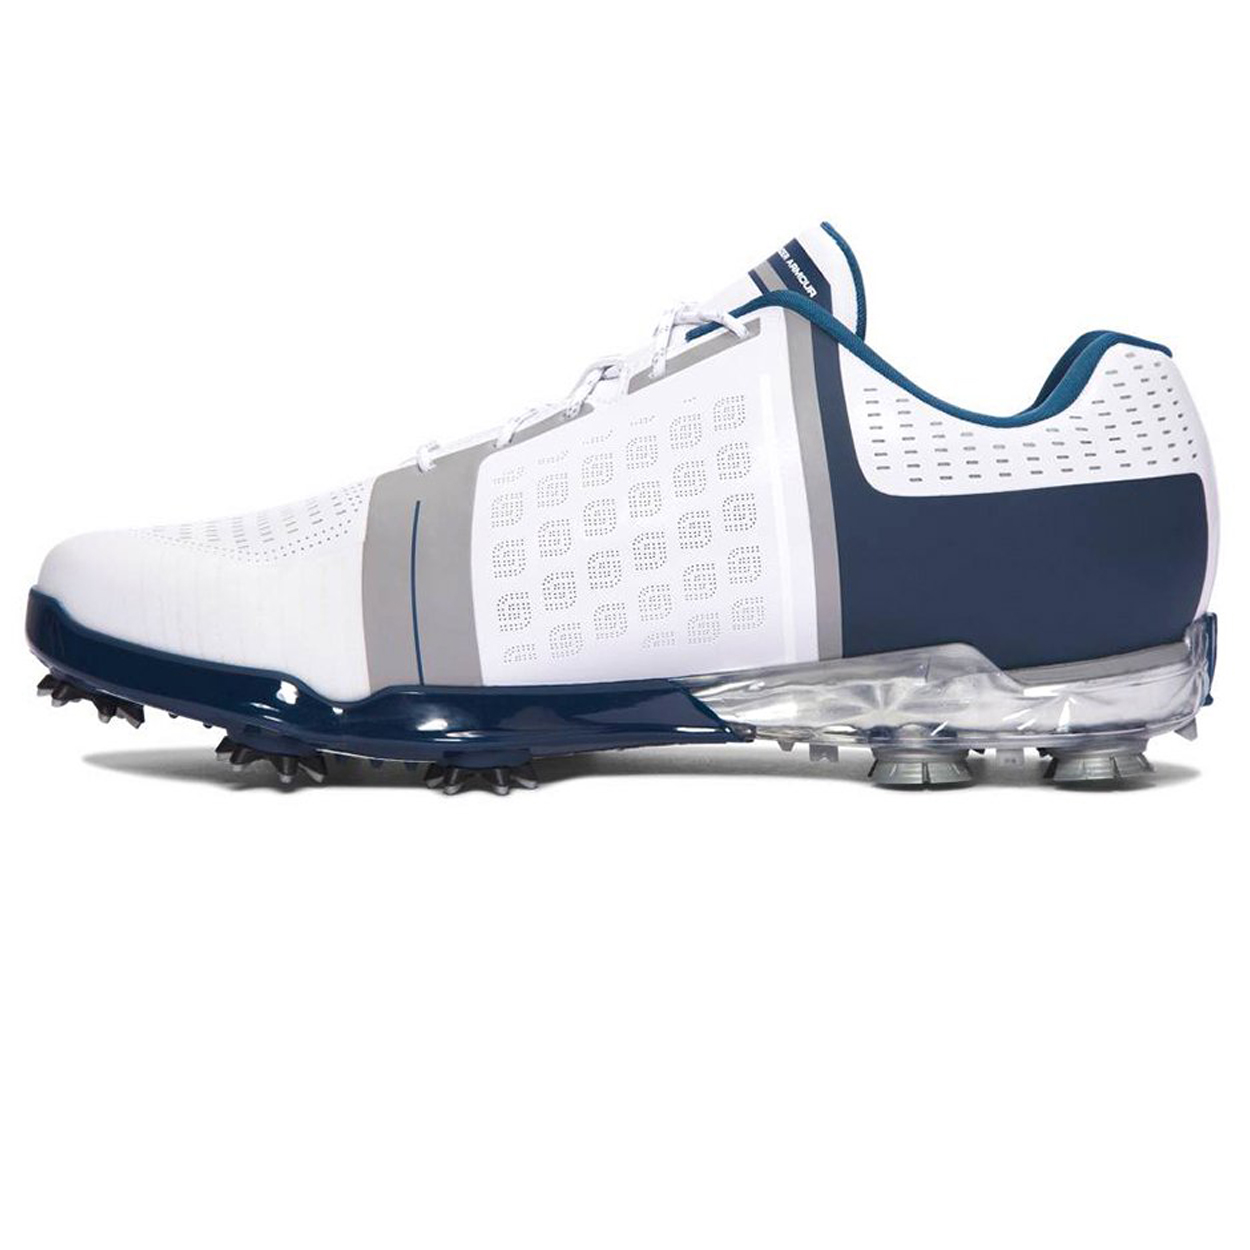 Under-Armour-Men-039-s-Spieth-I-Golf-Shoes-Brand-New thumbnail 14